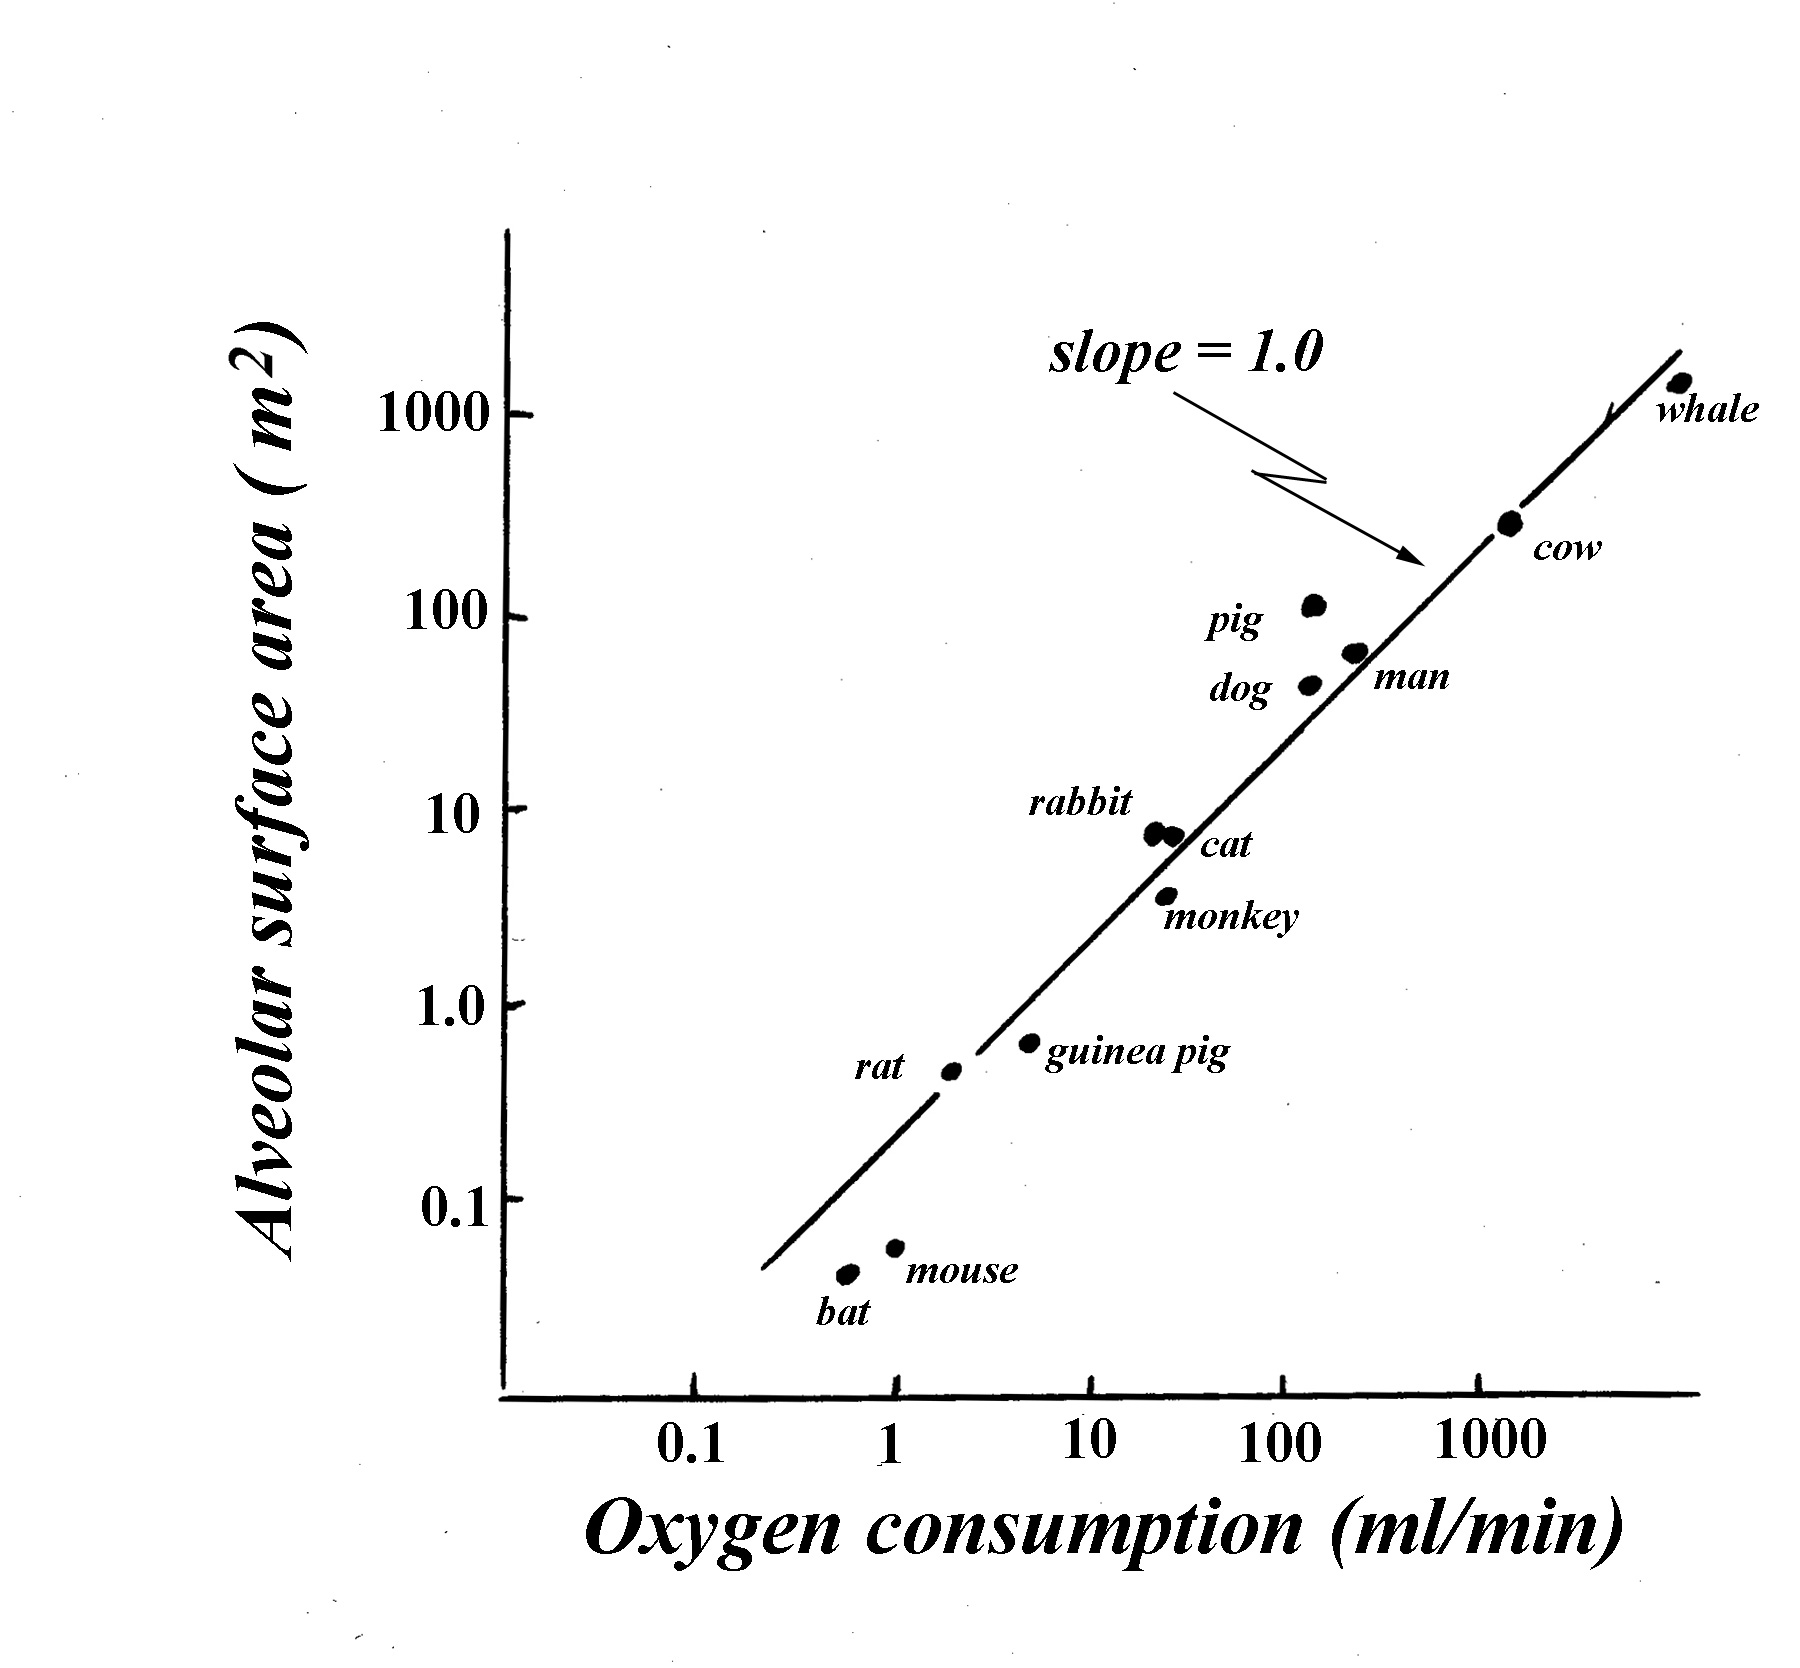 heart rate and oxygen consumption relationship